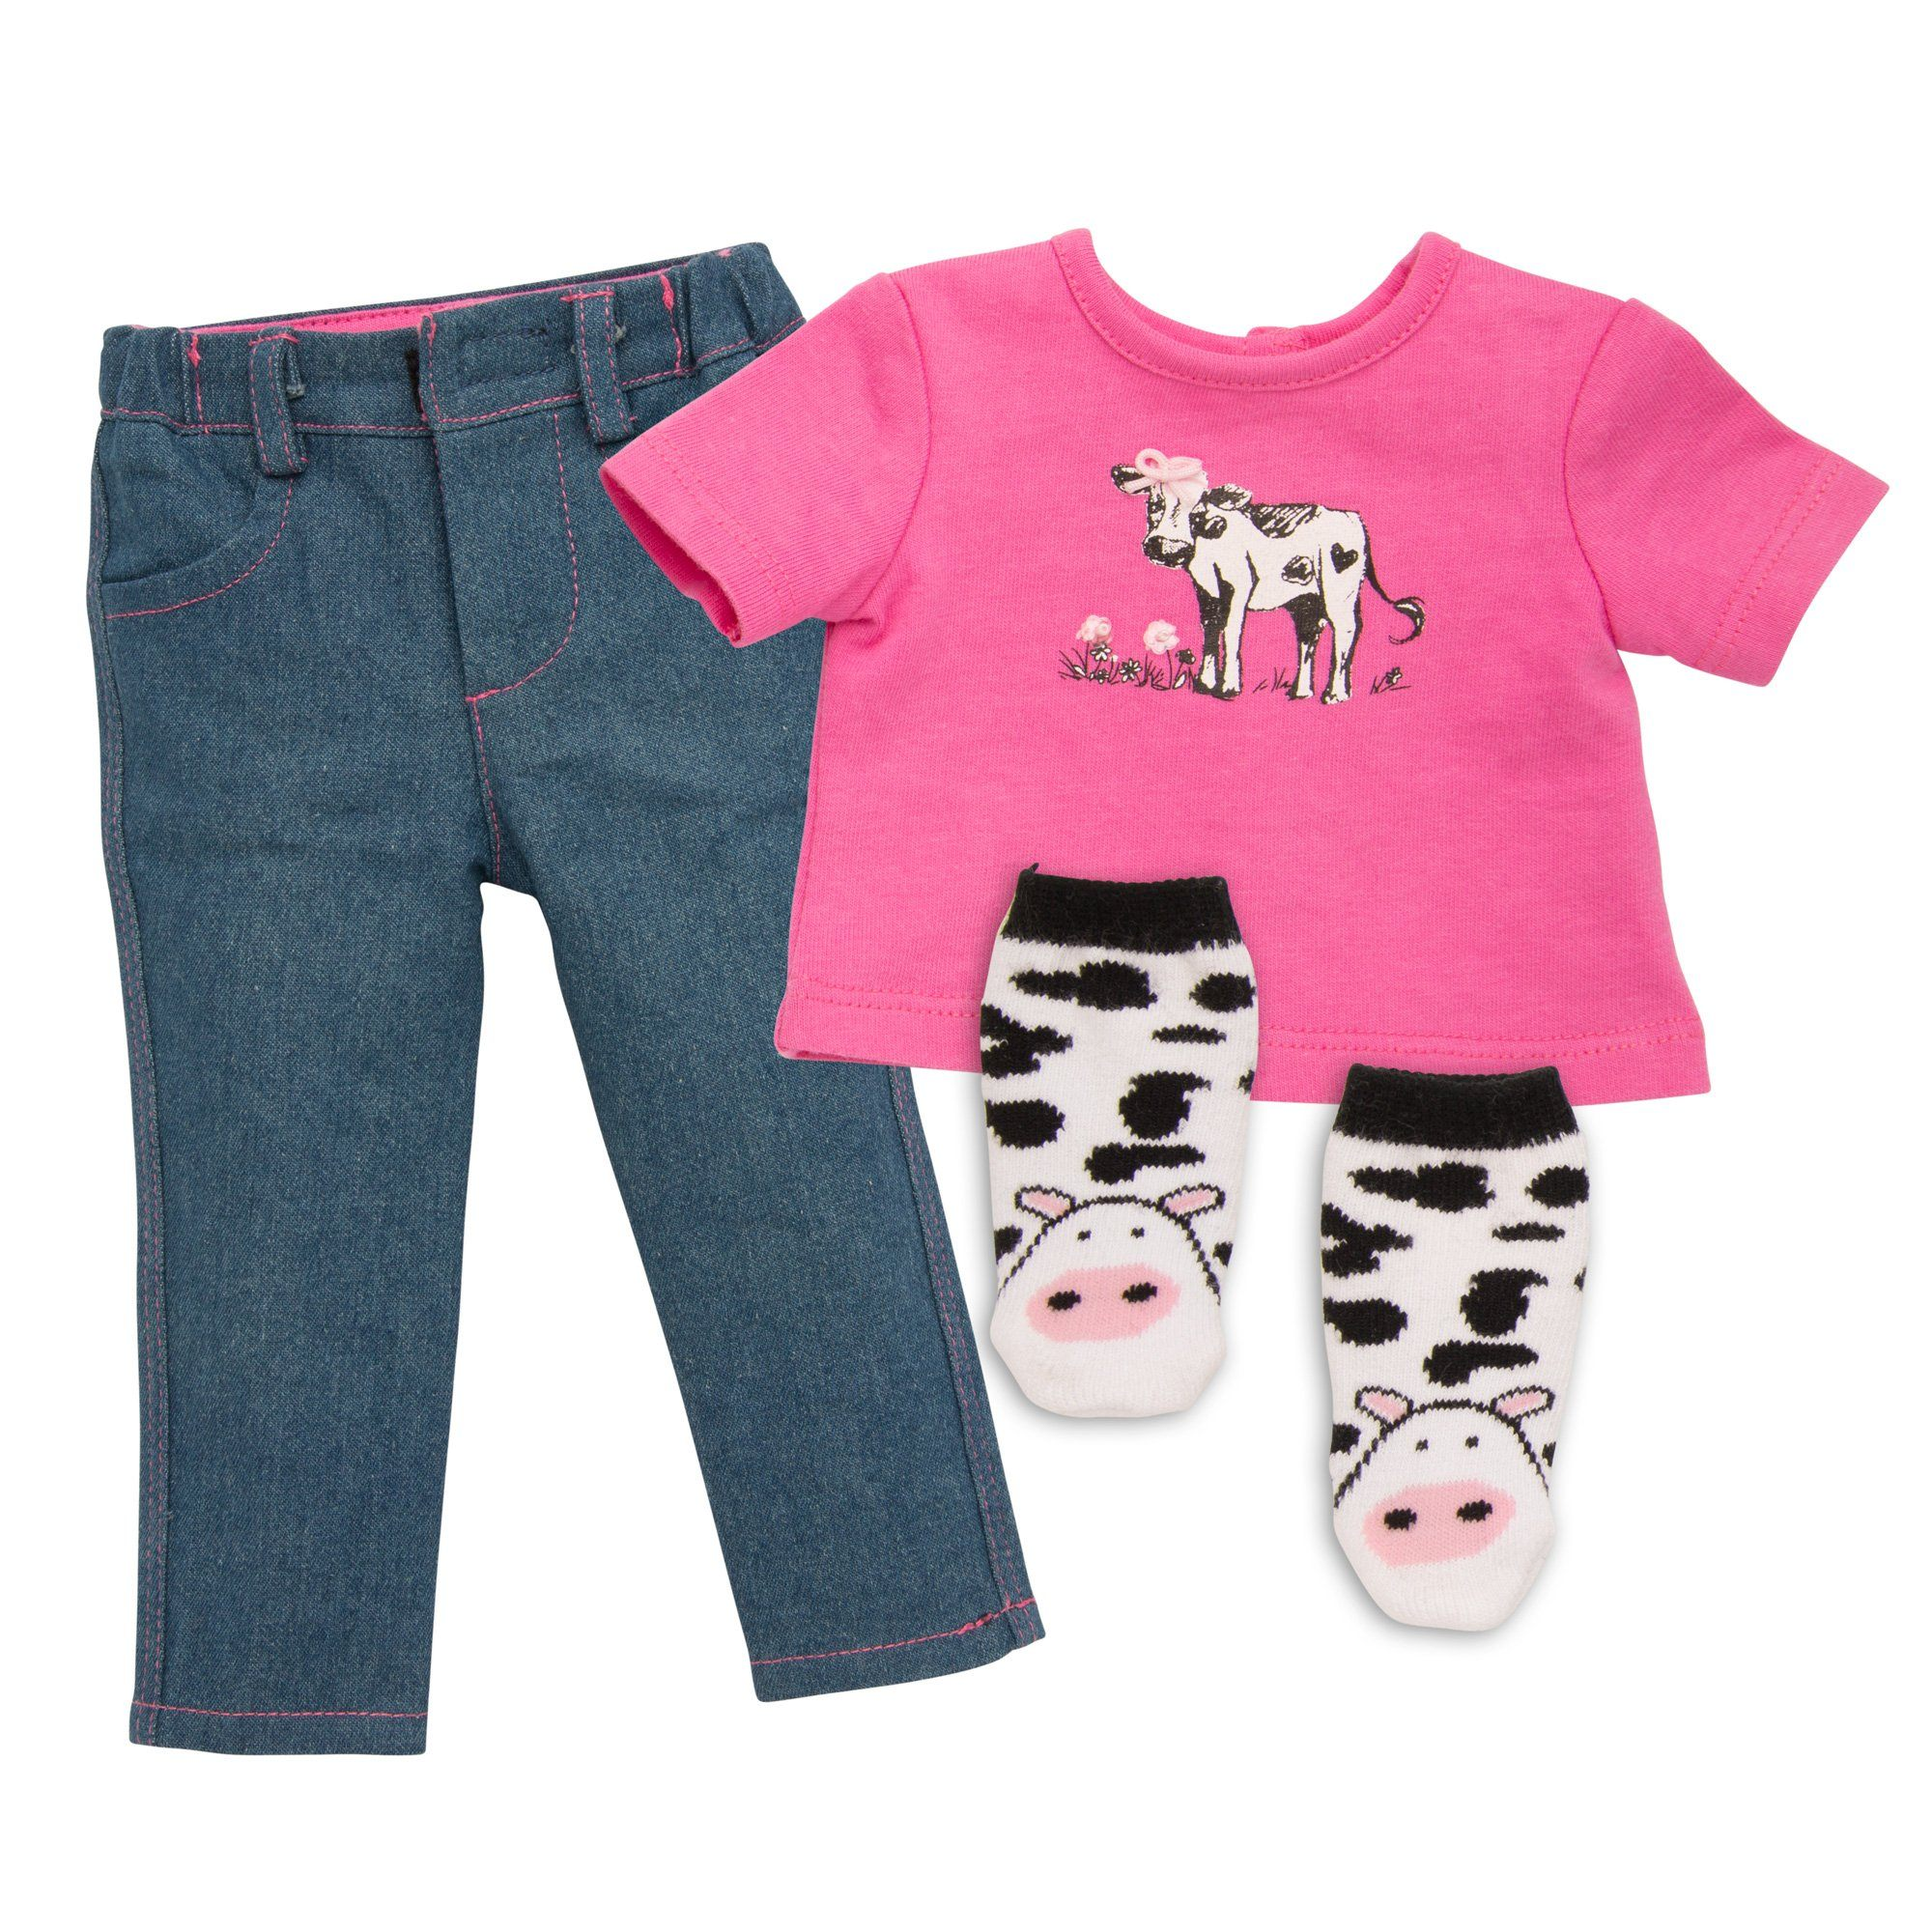 Pink t-shirt with cow graphic, denim jeans and cow-print socks fits all 18 inch dolls. Maplelea.com